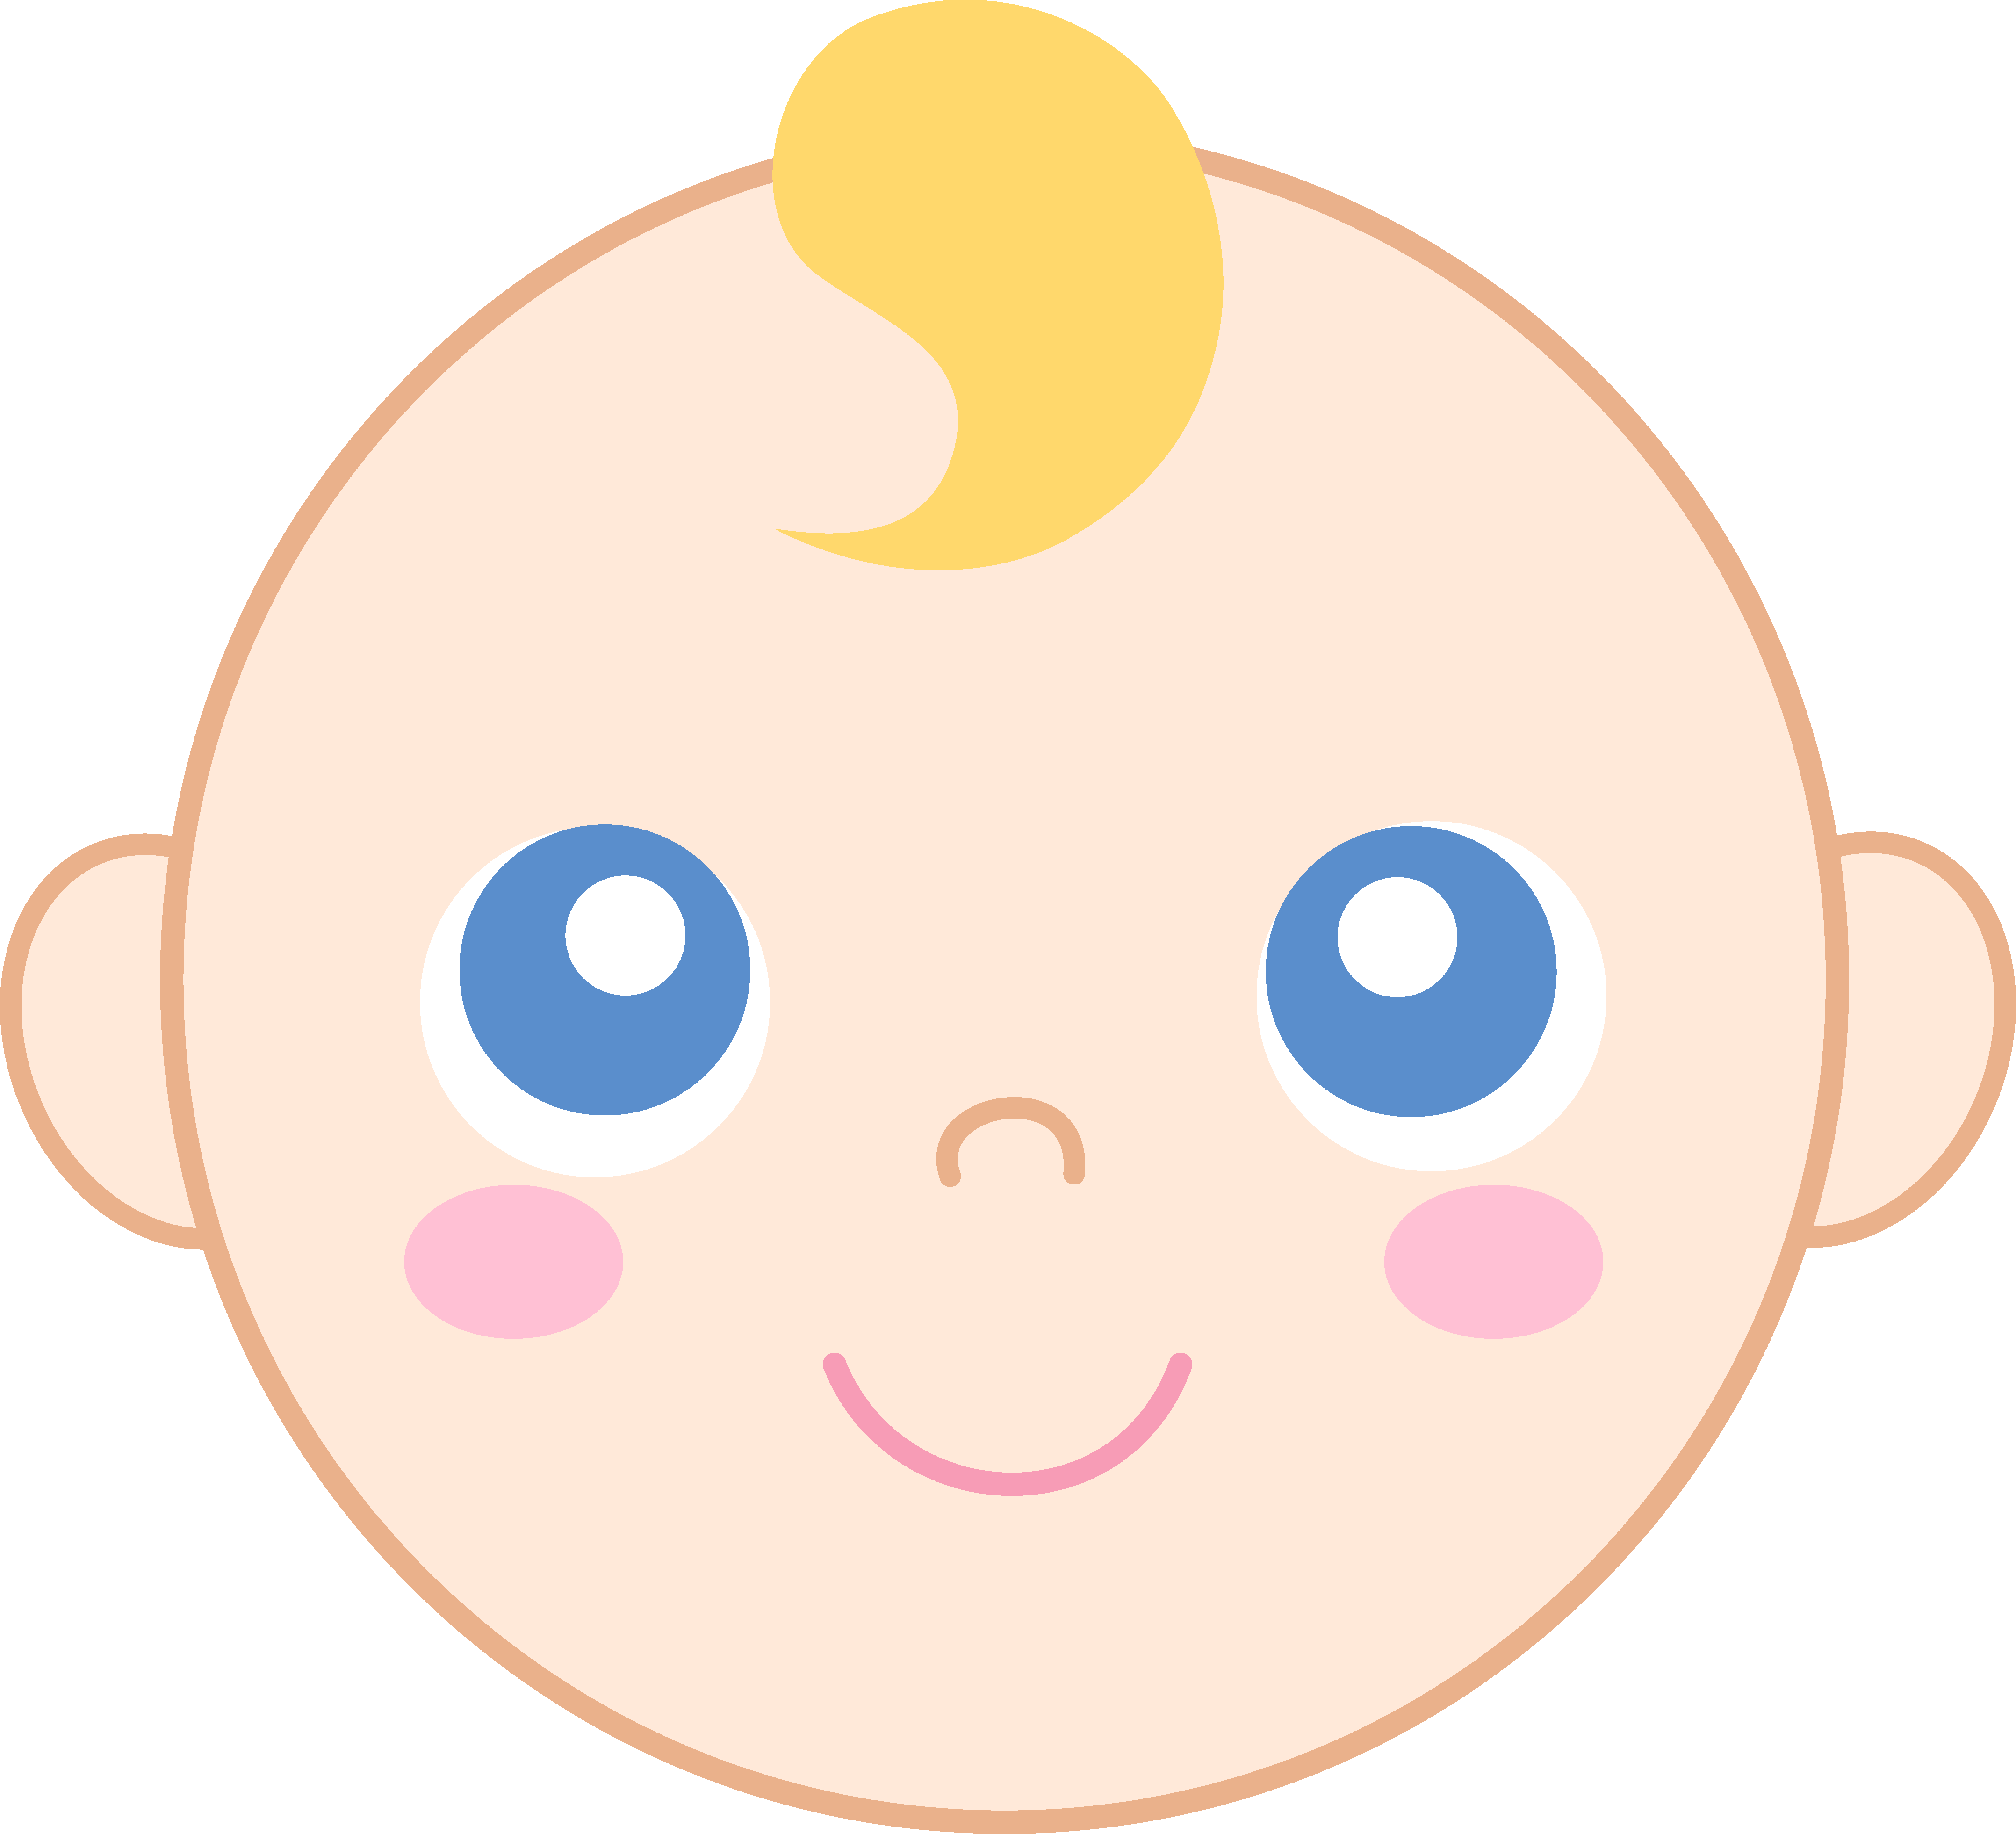 Clipart smile illustration. Cute baby face free